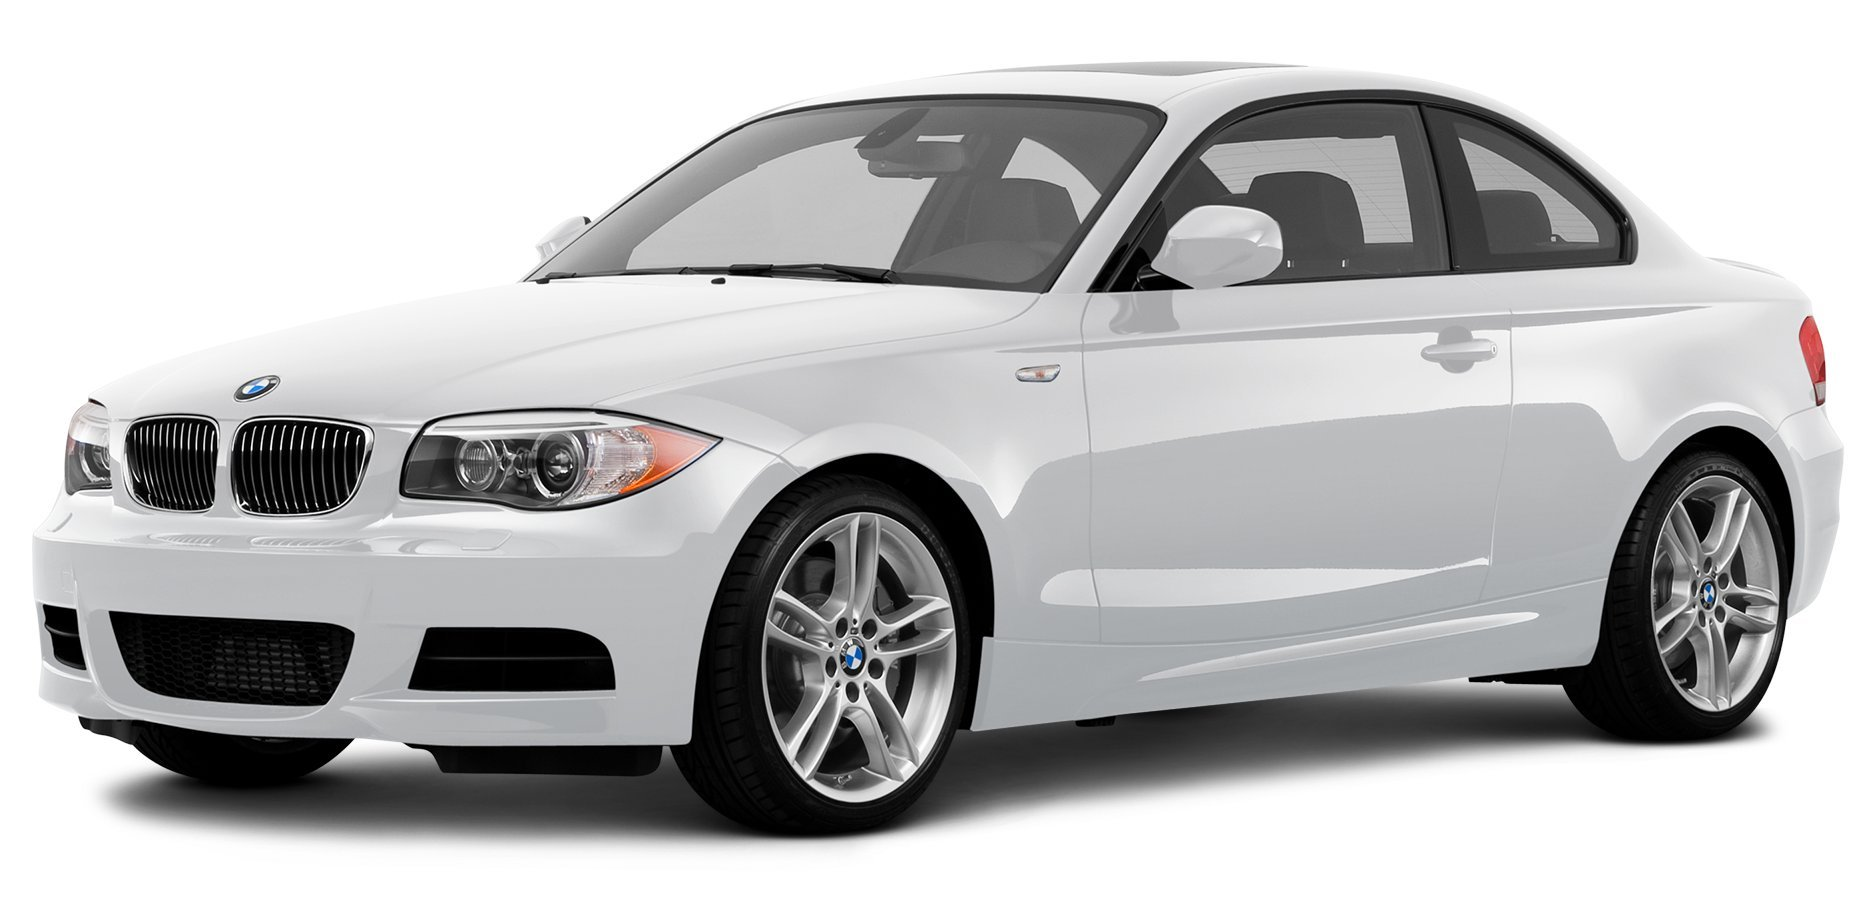 2013 bmw 135i reviews images and specs vehicles - 2013 bmw 335i coupe specs ...